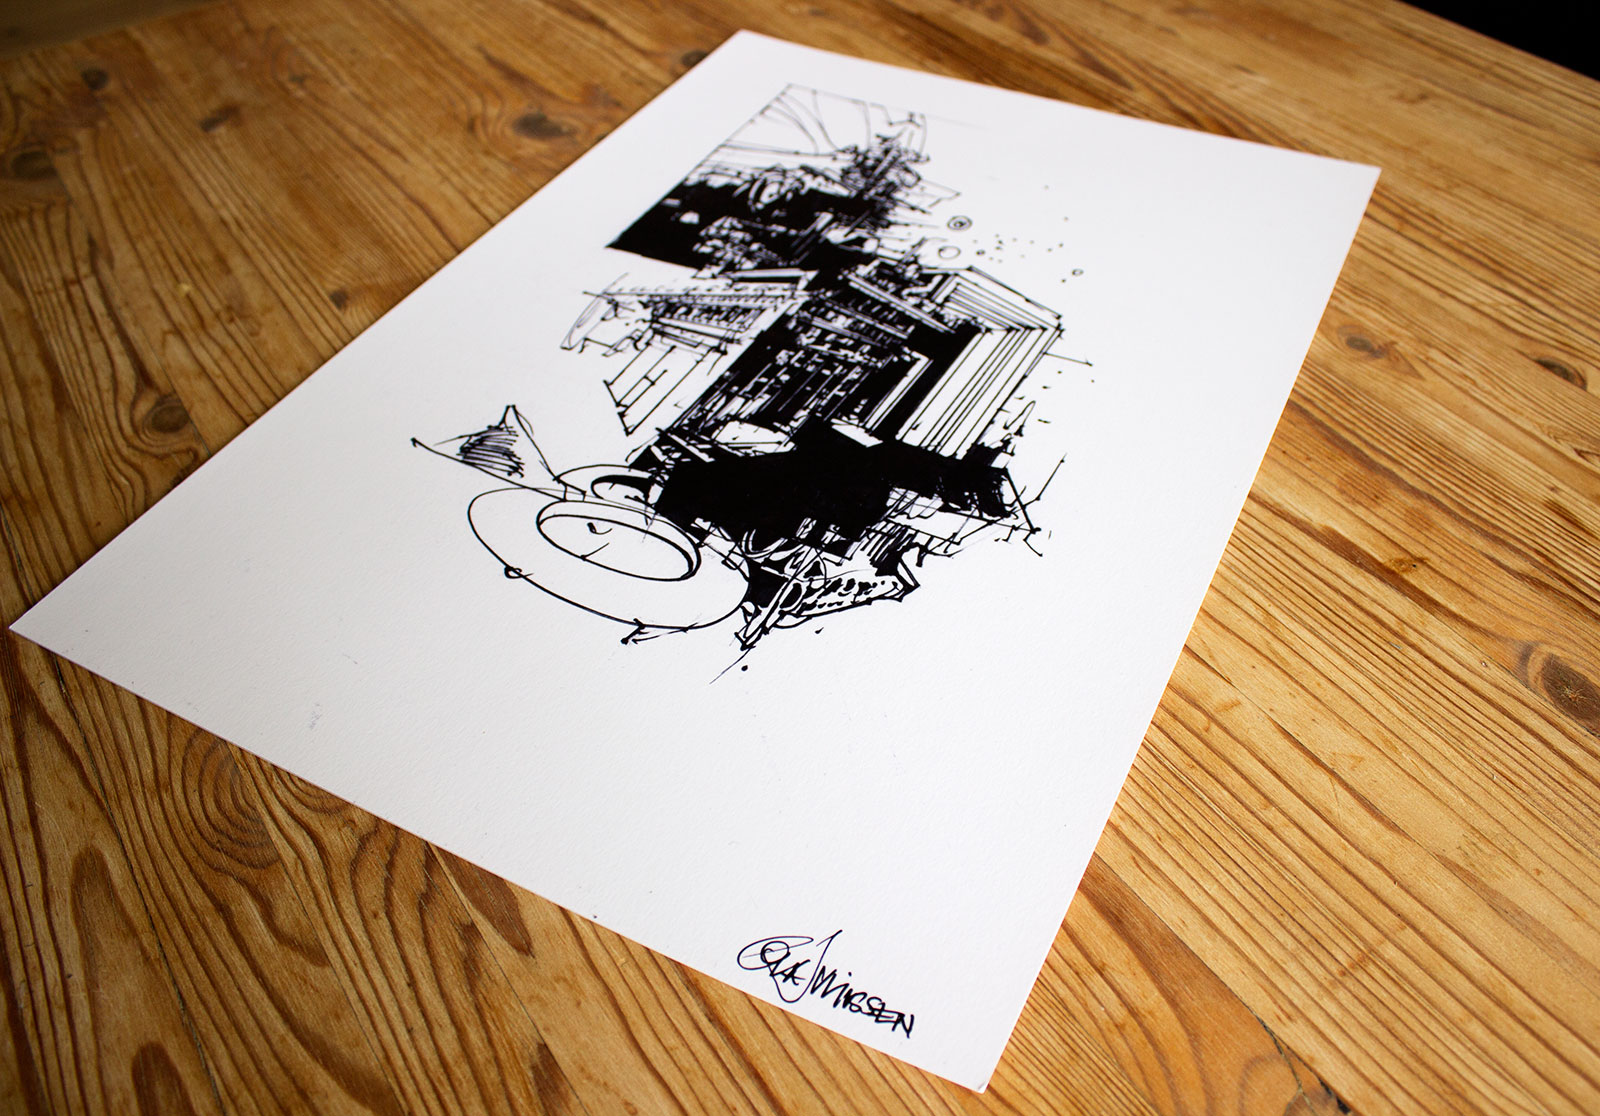 art-prints, gliceé, aesthetic, illustrative, monochrome, architecture, black, white, ink, paper, abstract-forms, architectural, black-and-white, buildings, decorative, expressionism, graffiti, male, sketch, urban, Buy original high quality art. Paintings, drawings, limited edition prints & posters by talented artists.